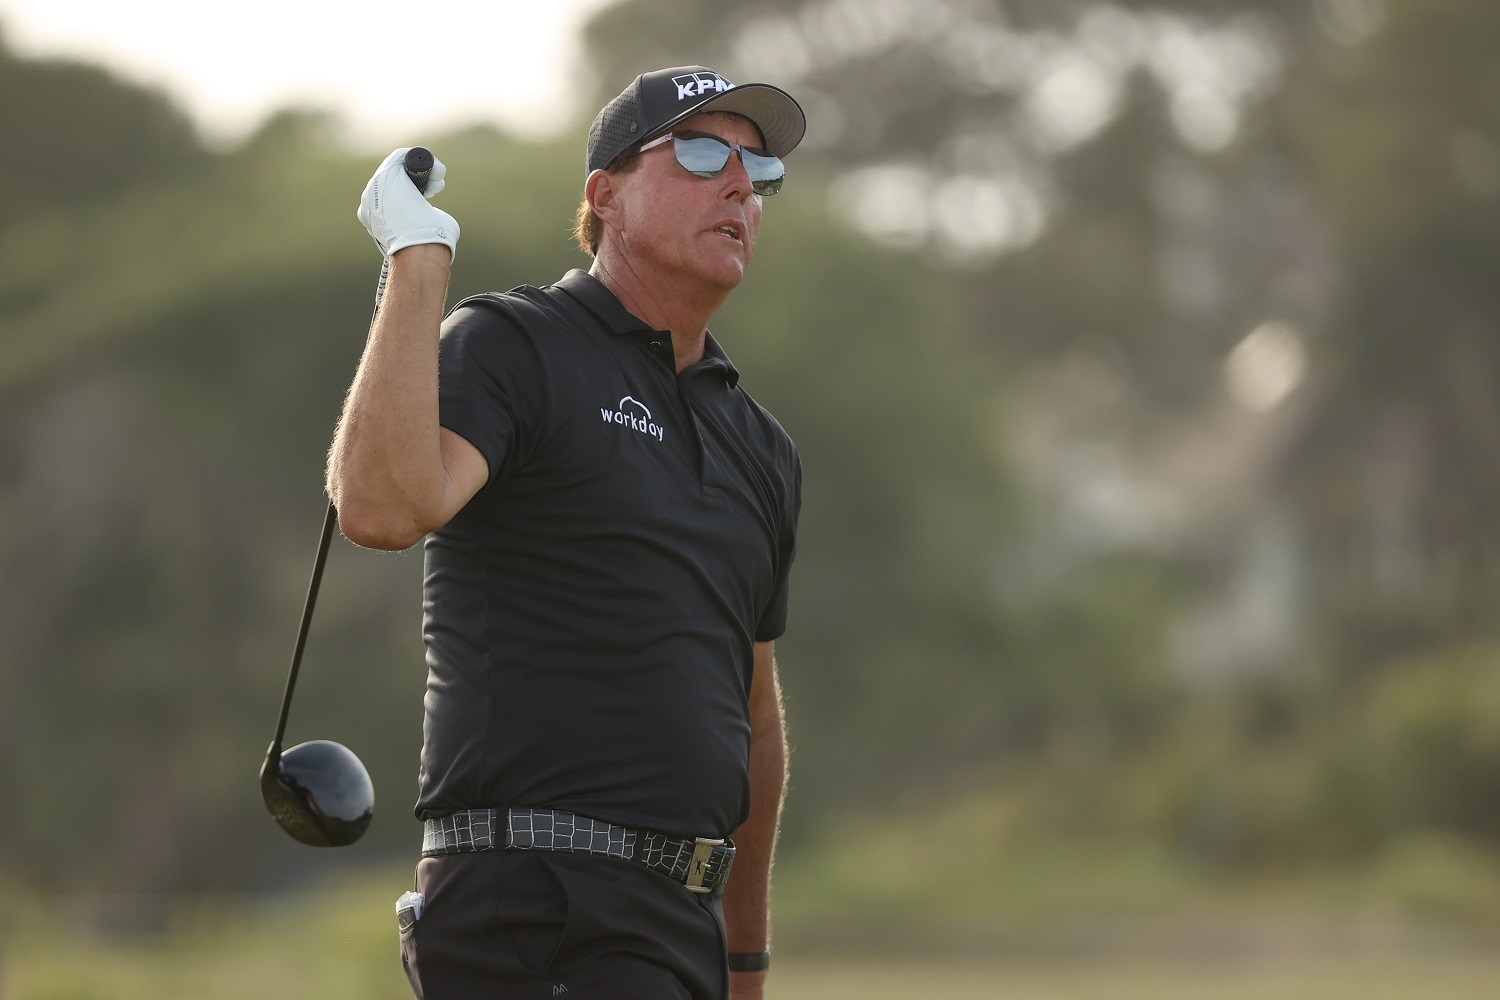 PGA Championship Winner Phil Mickelson Quickly Cleared the Air About a Brewing National Sports Scandal